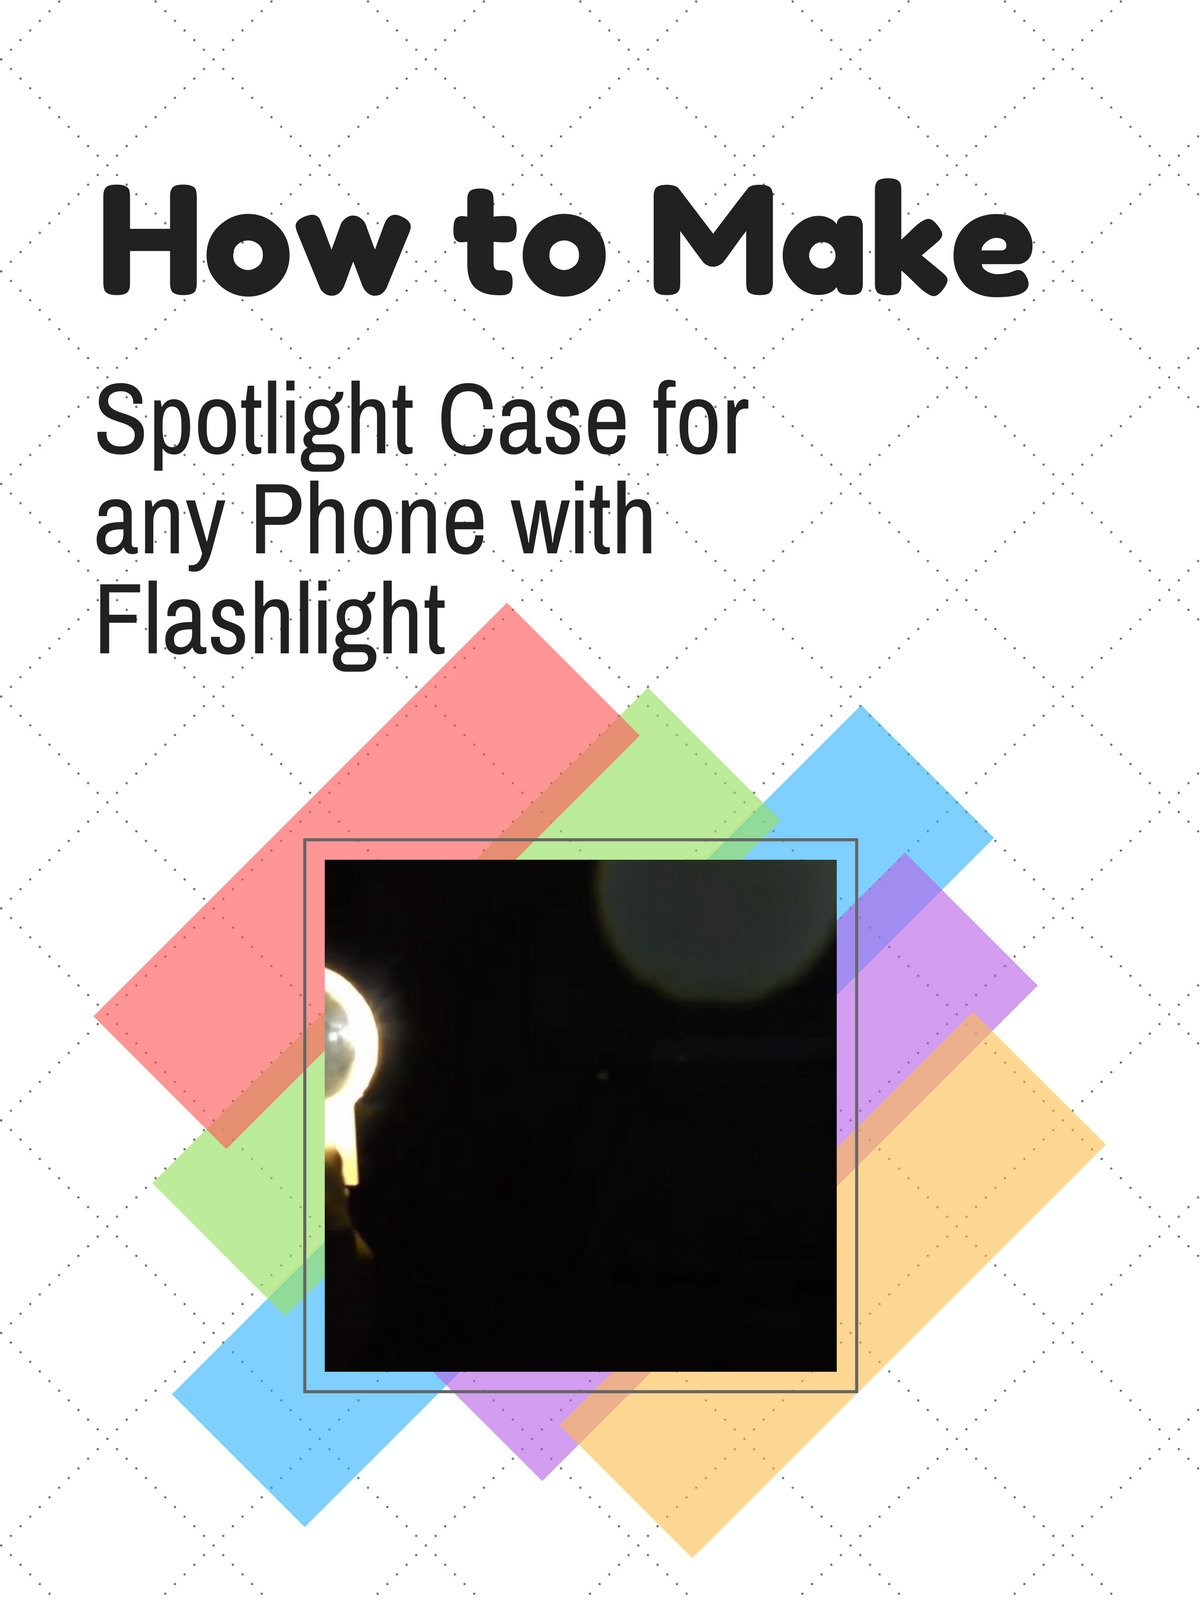 How to Make Spotlight Case for any Phone with Flashlight